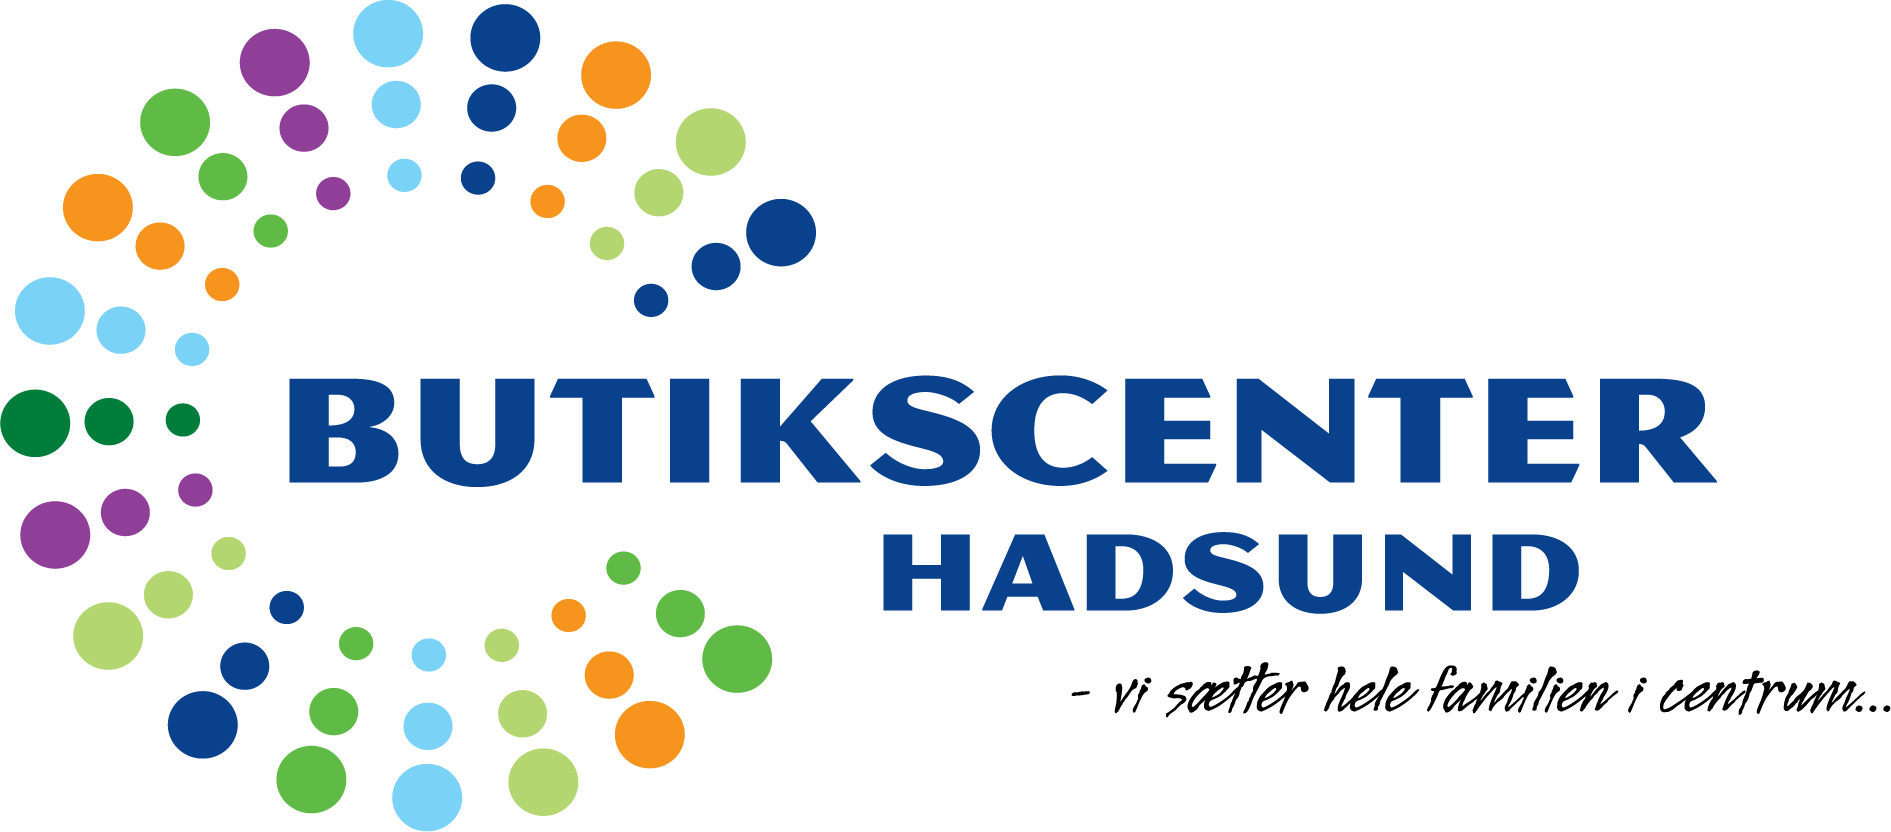 butikscenter hadsund logo